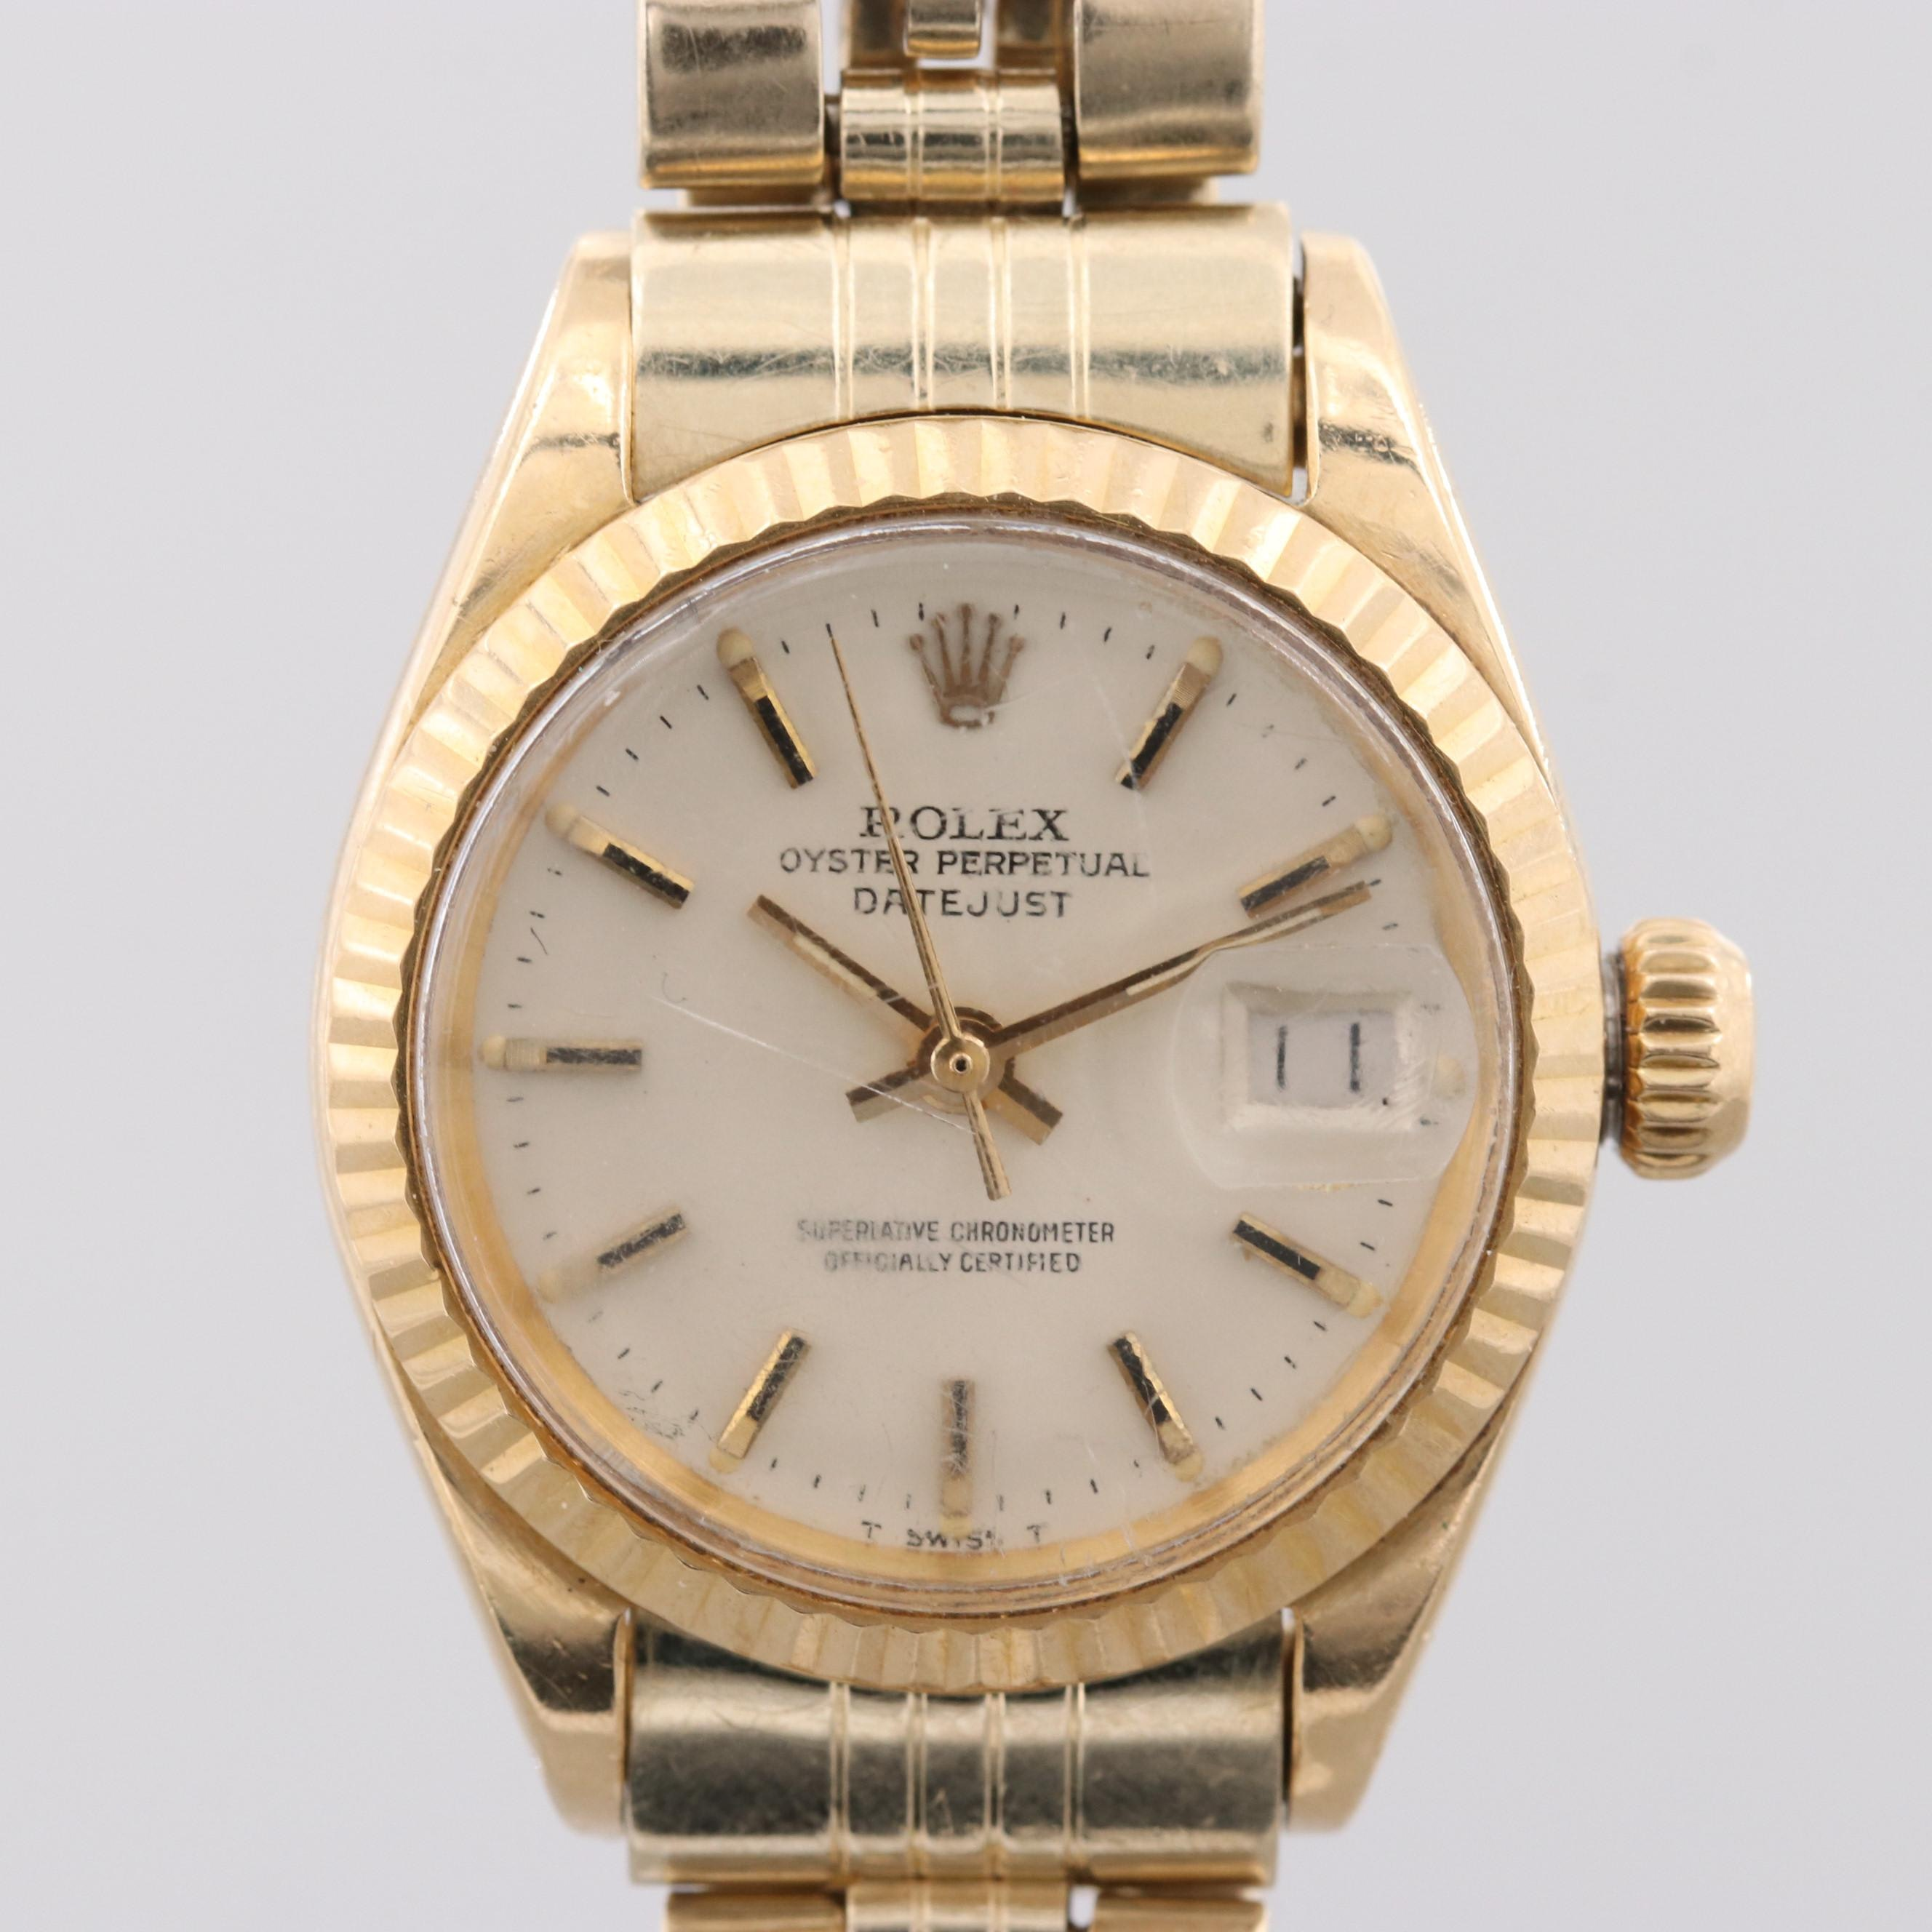 Rolex Datejust 18K Yellow Gold Wristwatch With 14K Jubilee Bracelet, 1971